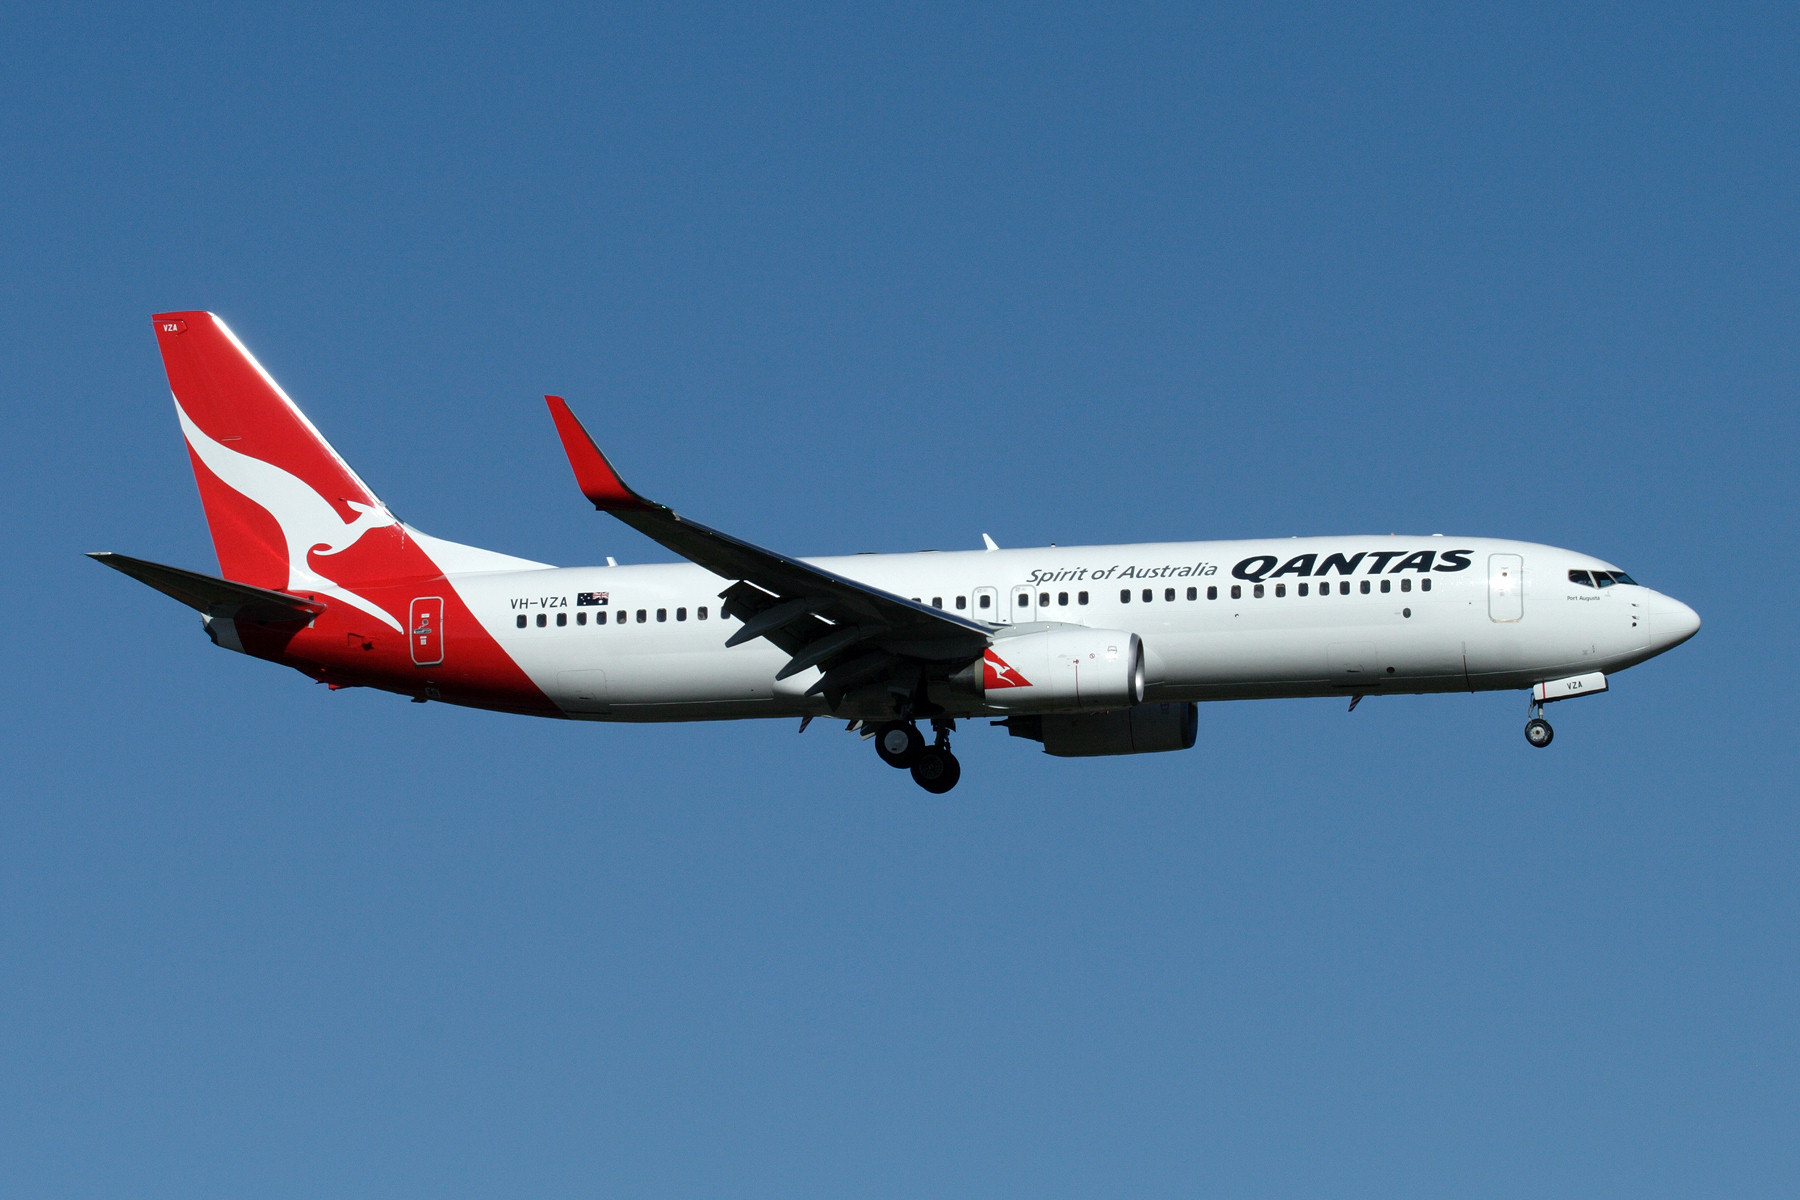 Qantas to embark on world's first 20-hour airline flight